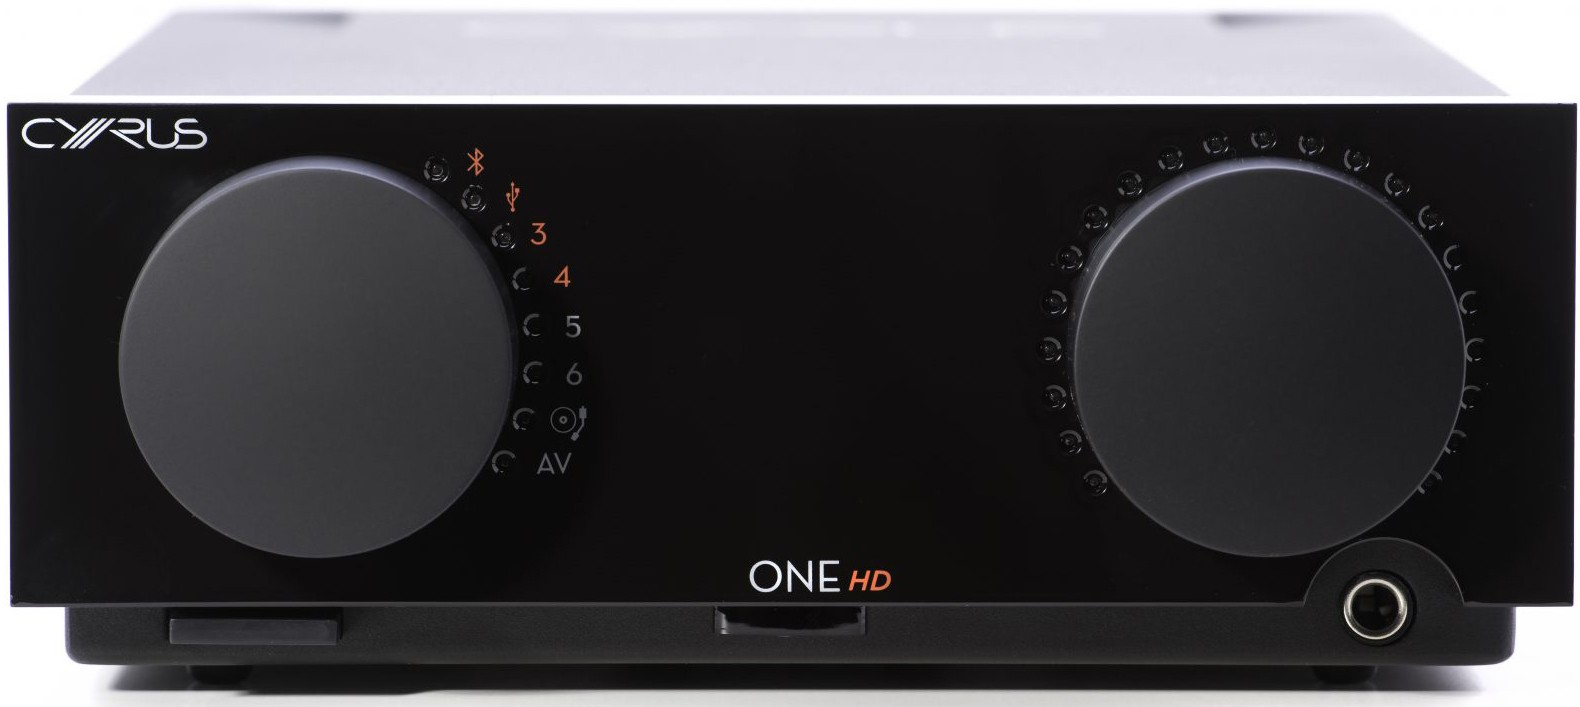 One HD System